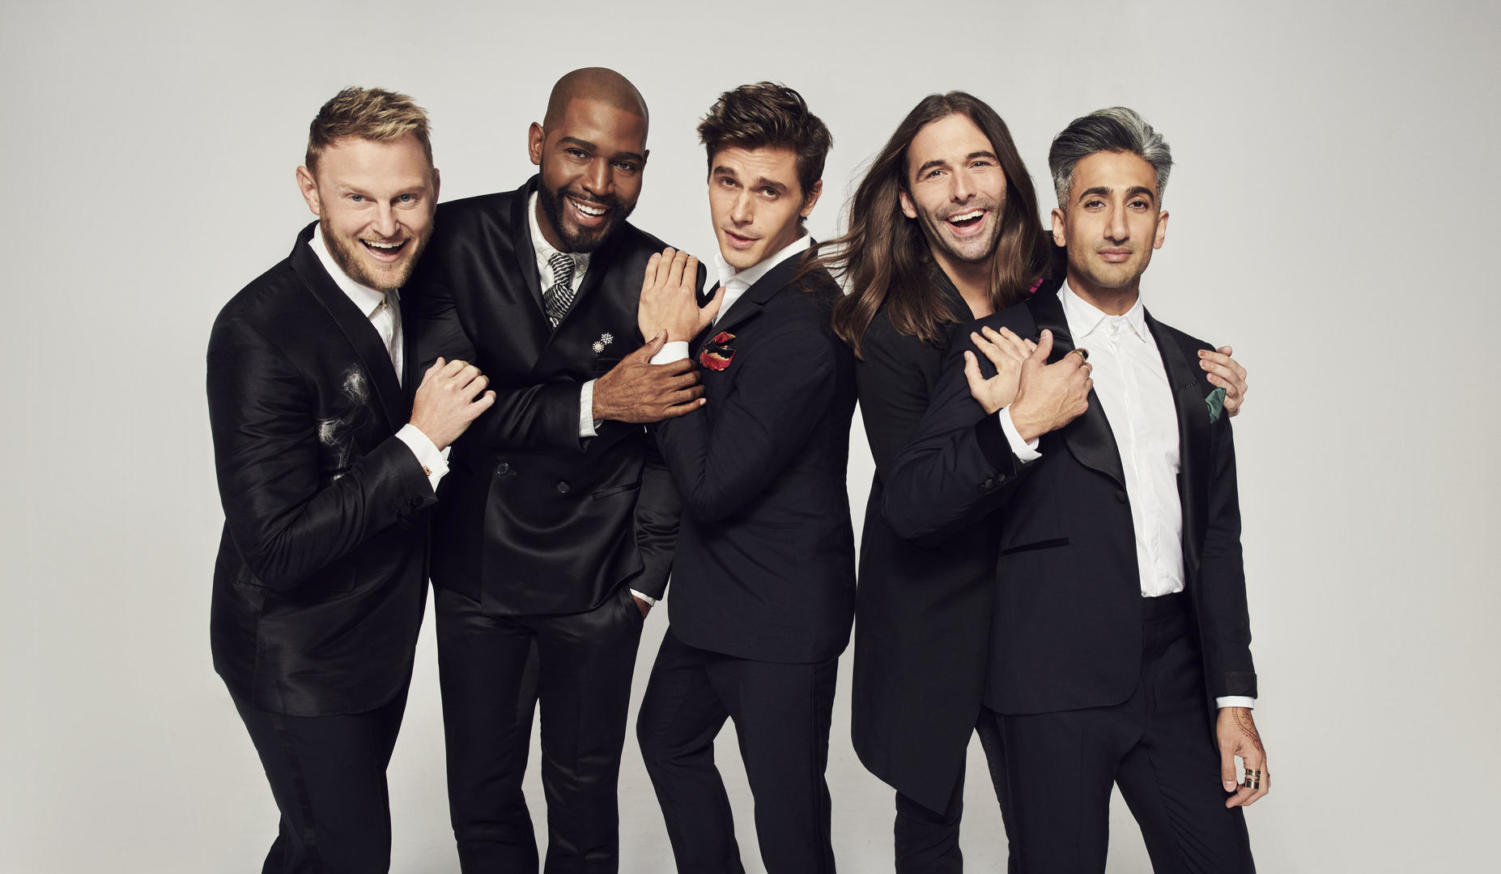 Left to Right: Bobby Berk, Karamo Brown, Antoni Porowski, Jonathan VanNess and Tan France.